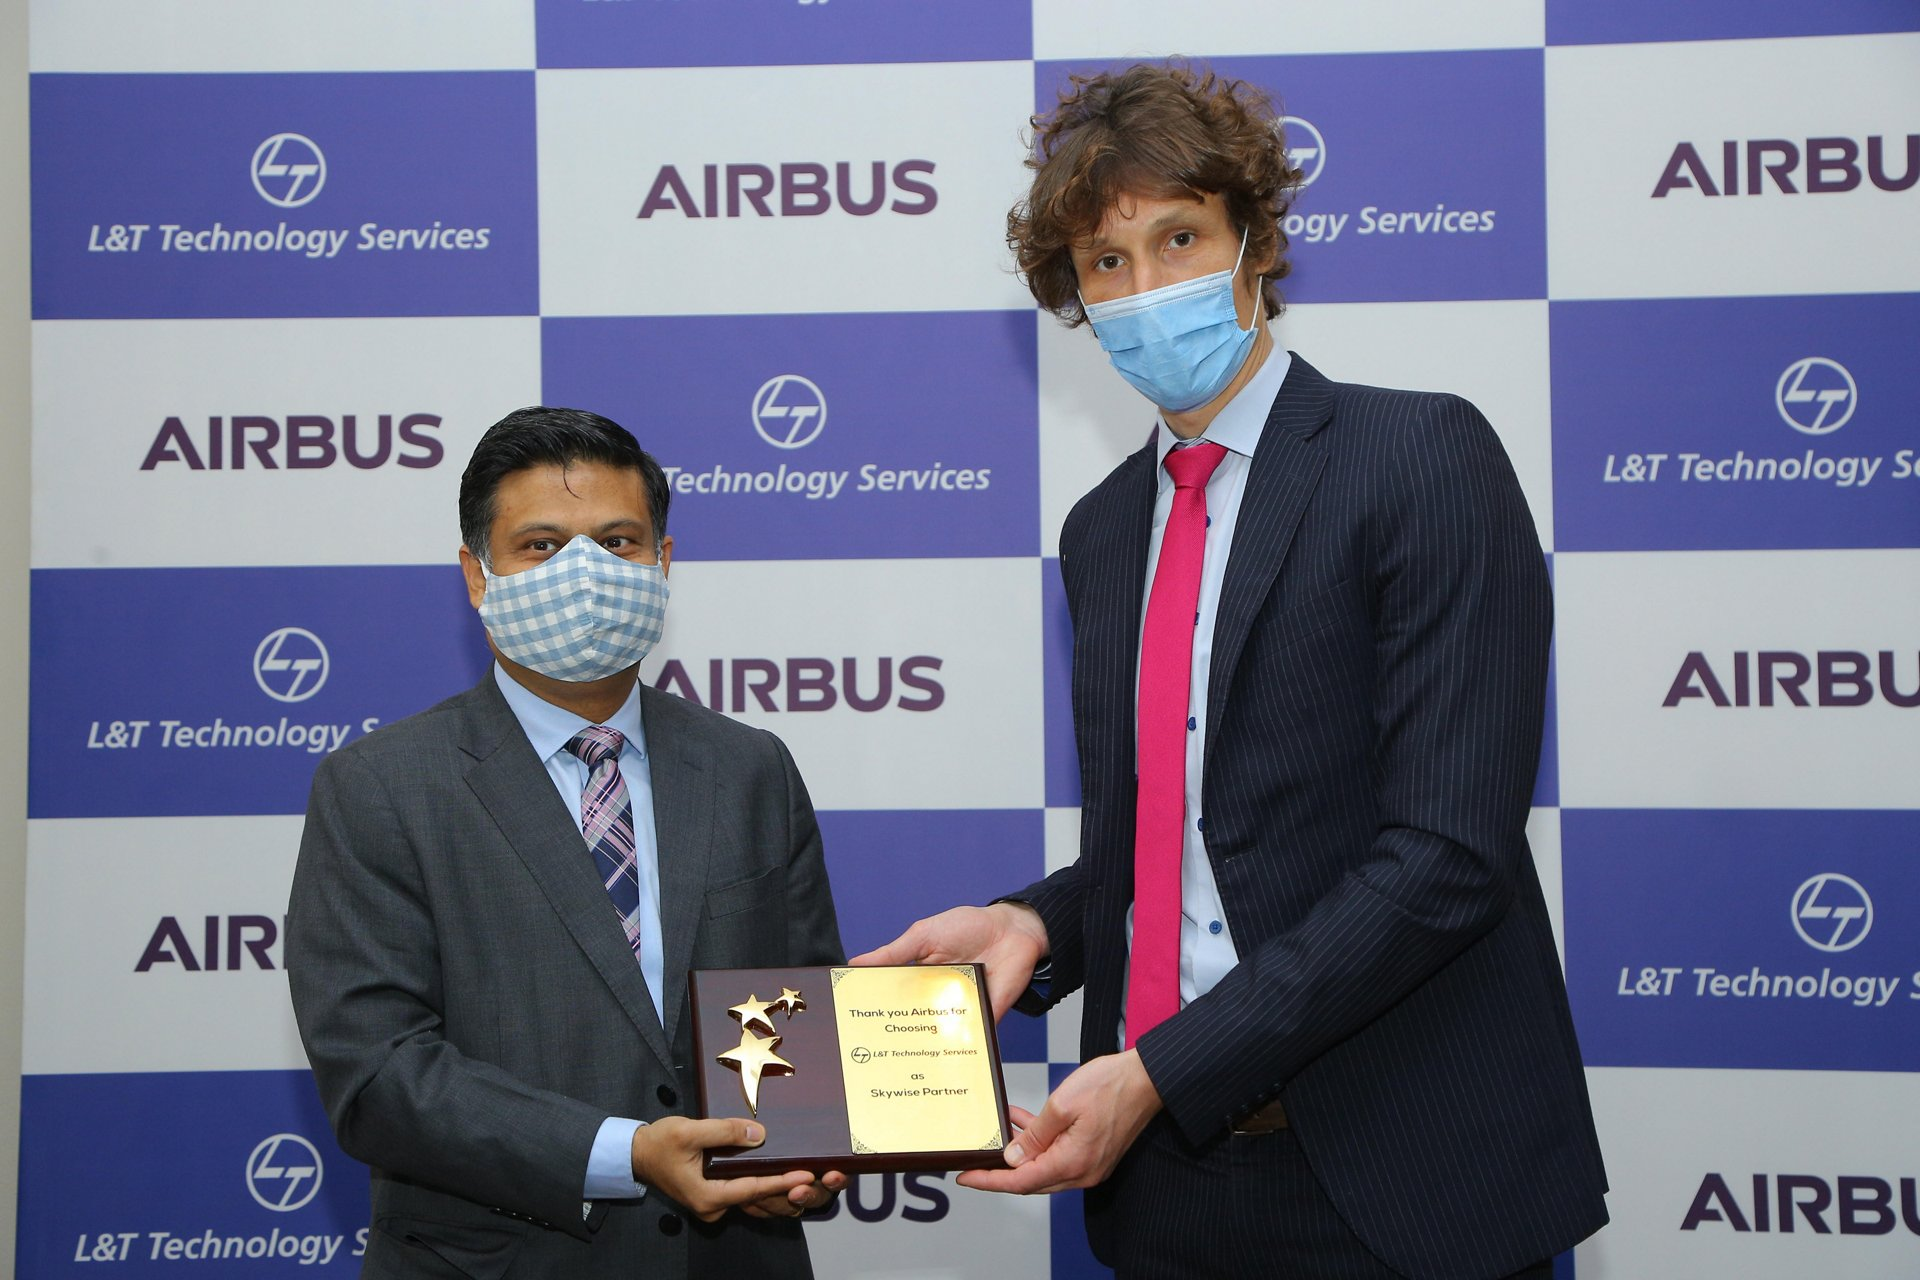 Airbus on-boards L&T Technology Services (L&TTS) as a partner for its Skywise Partner Programme